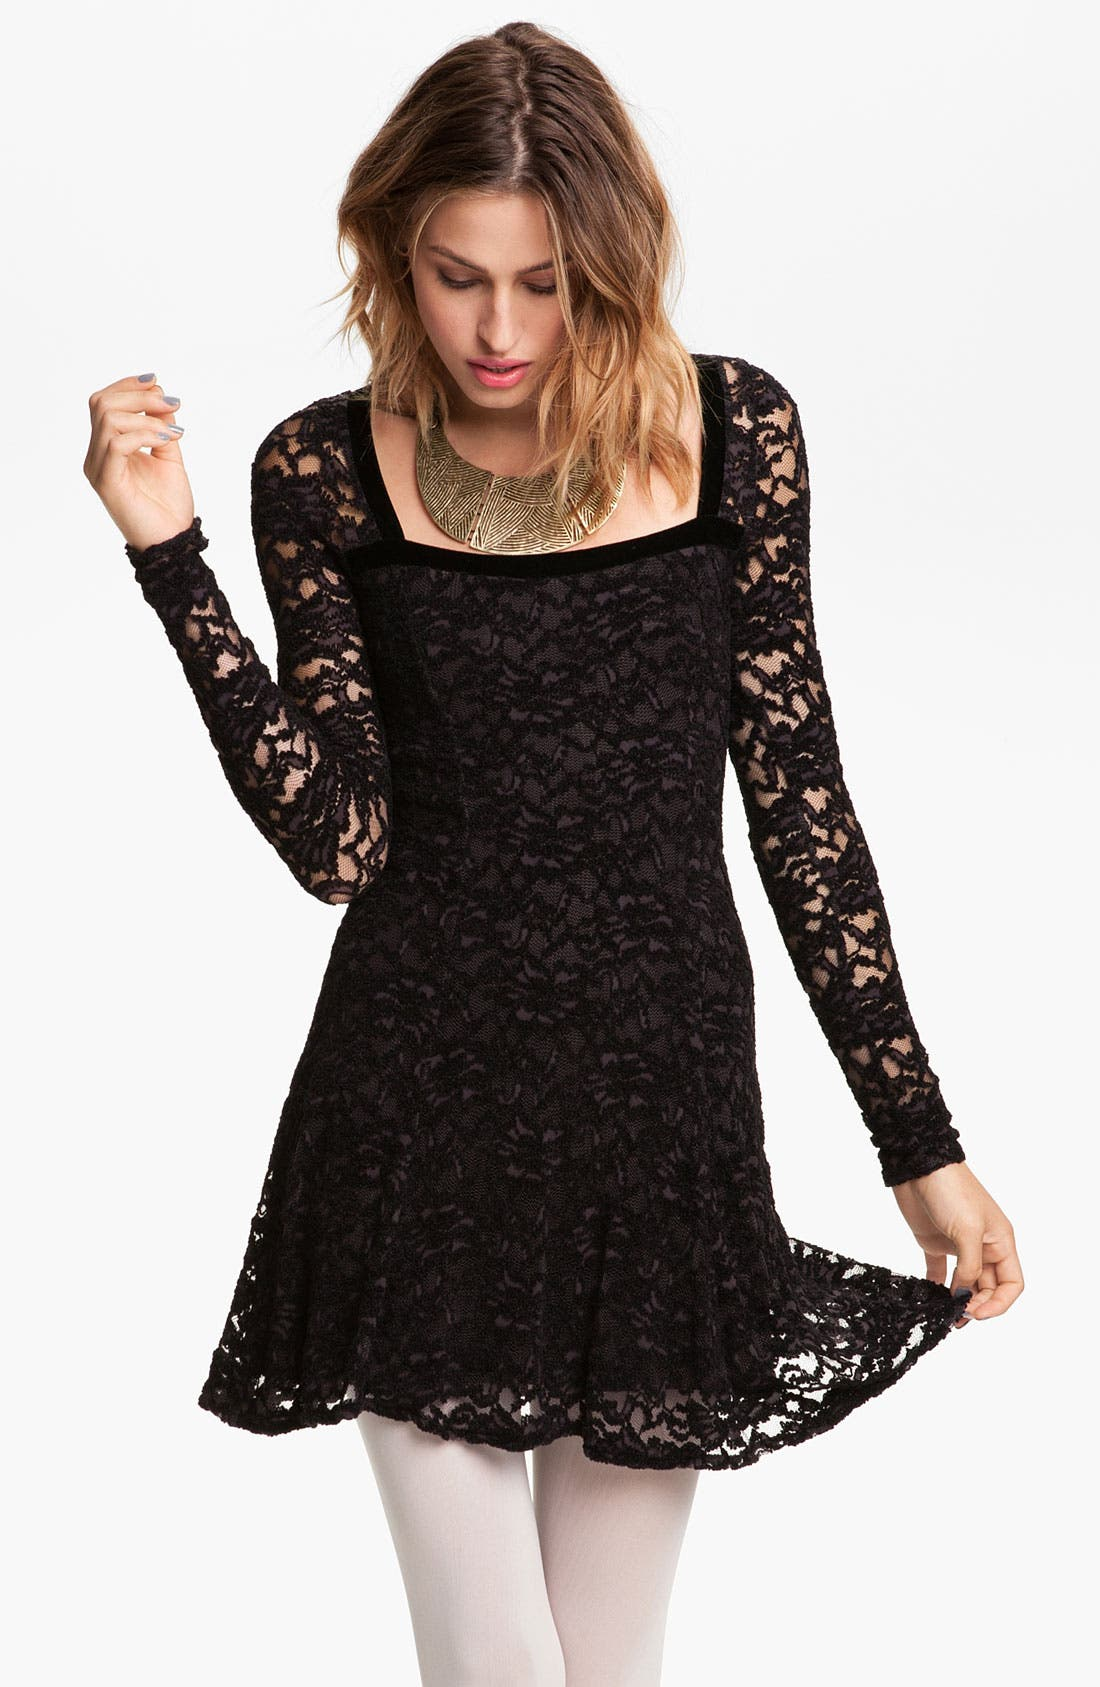 Alternate Image 1 Selected - Free People 'Flirt for You' Lace Dress